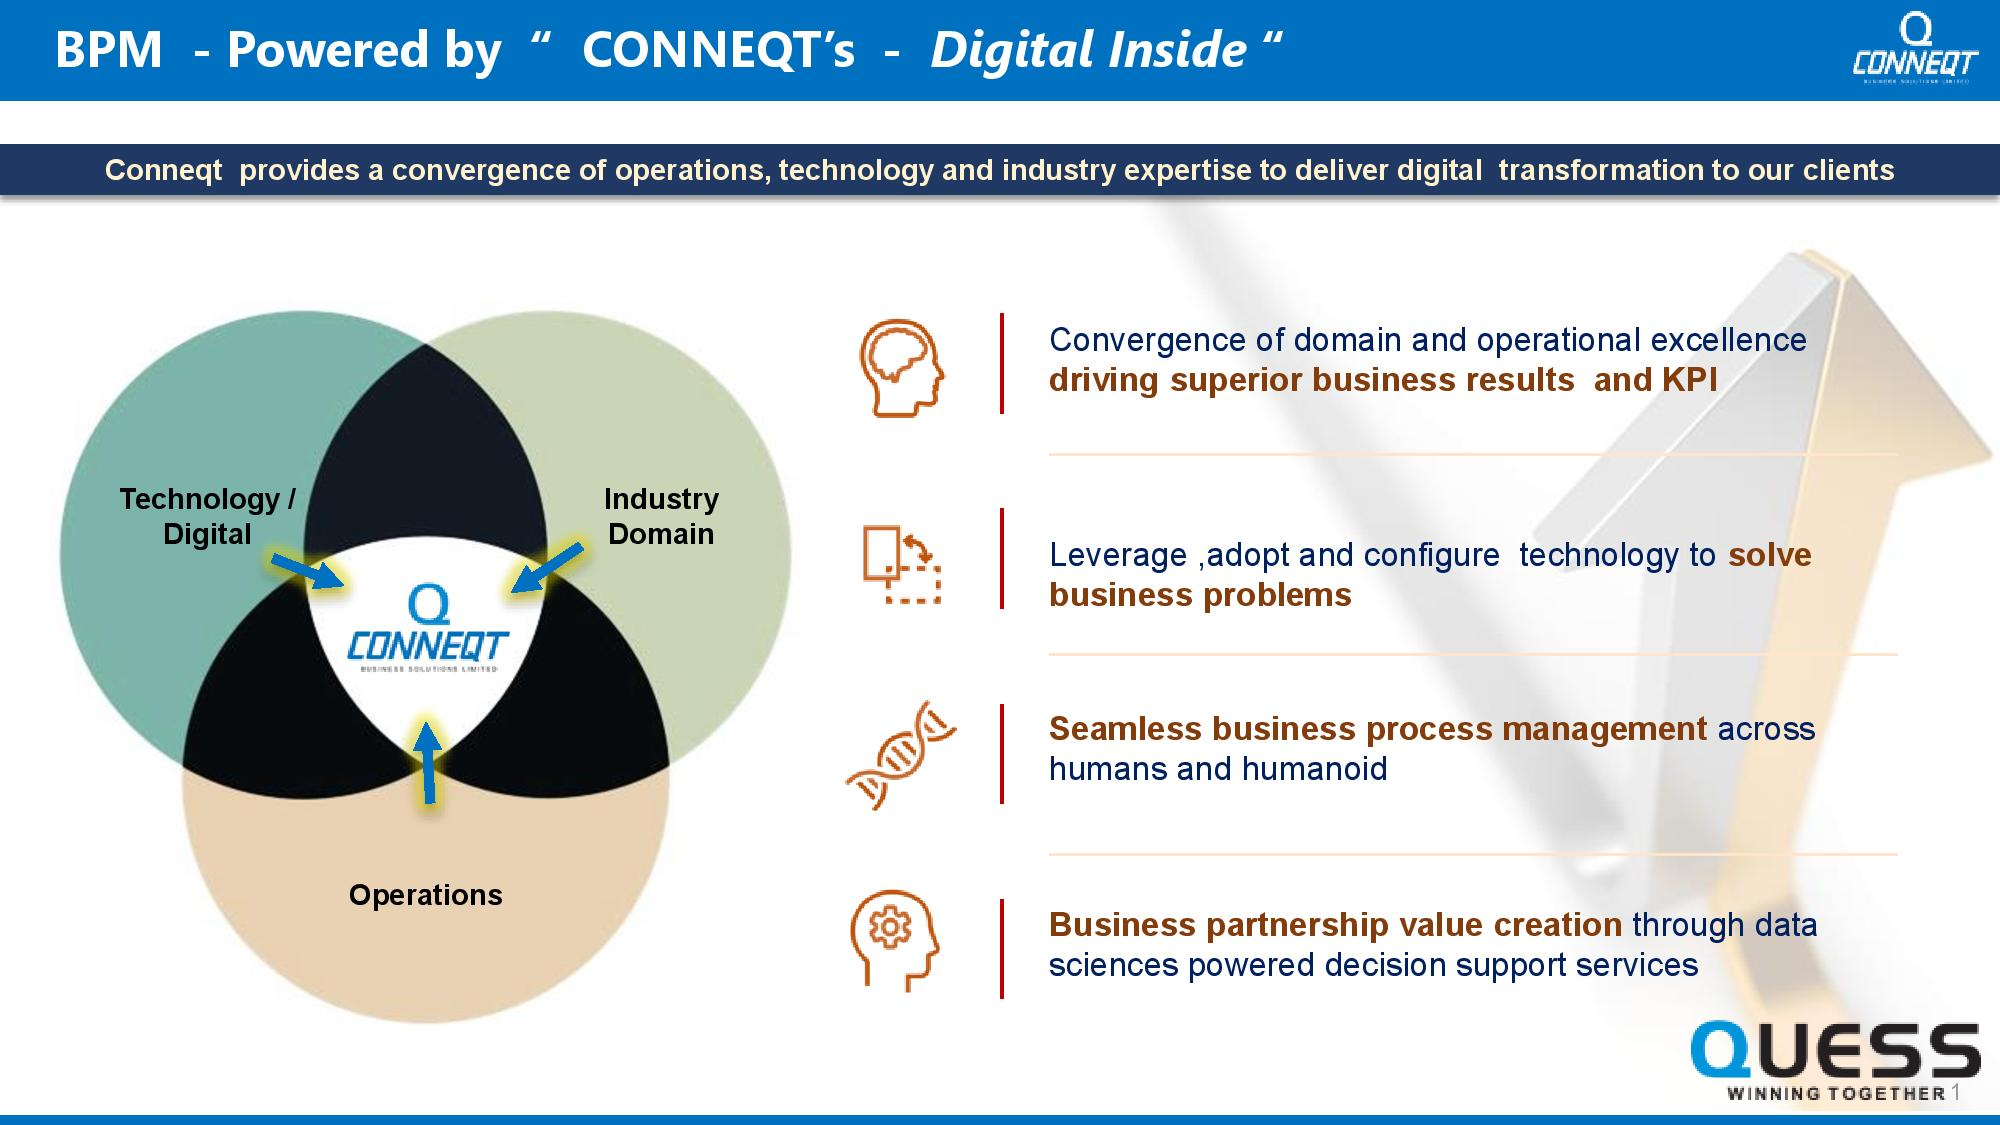 Conneqtcorp digital inside details of operation technology and industry expertise.